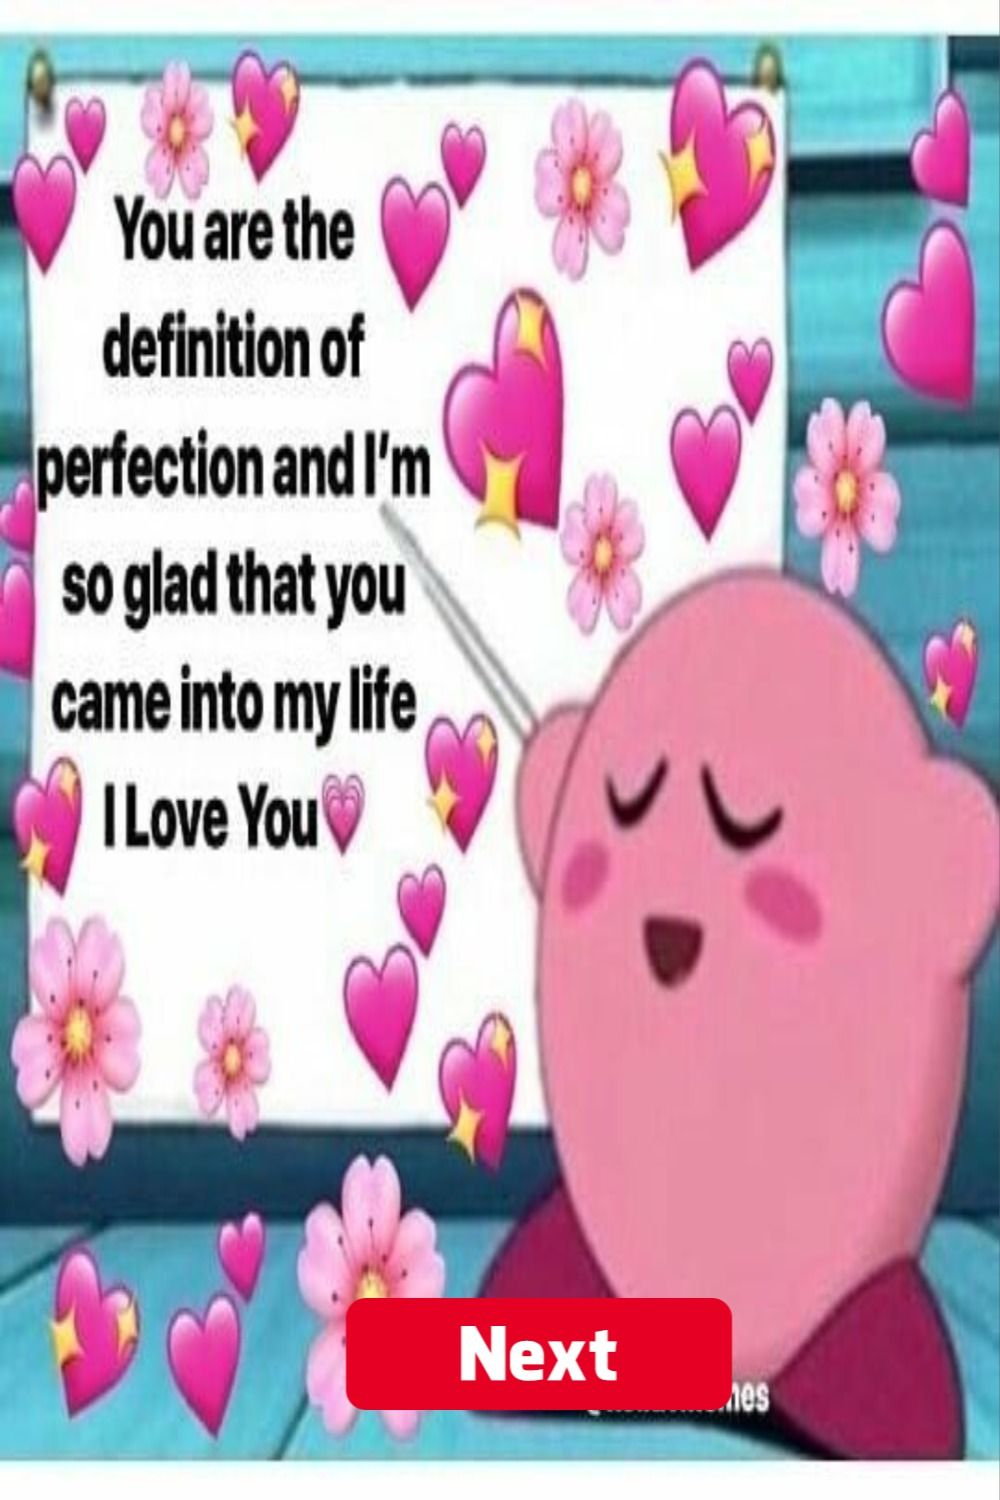 Love Memes For Her Funny I Love You Funny Memes Cute Love Memes Love You Meme Love Memes